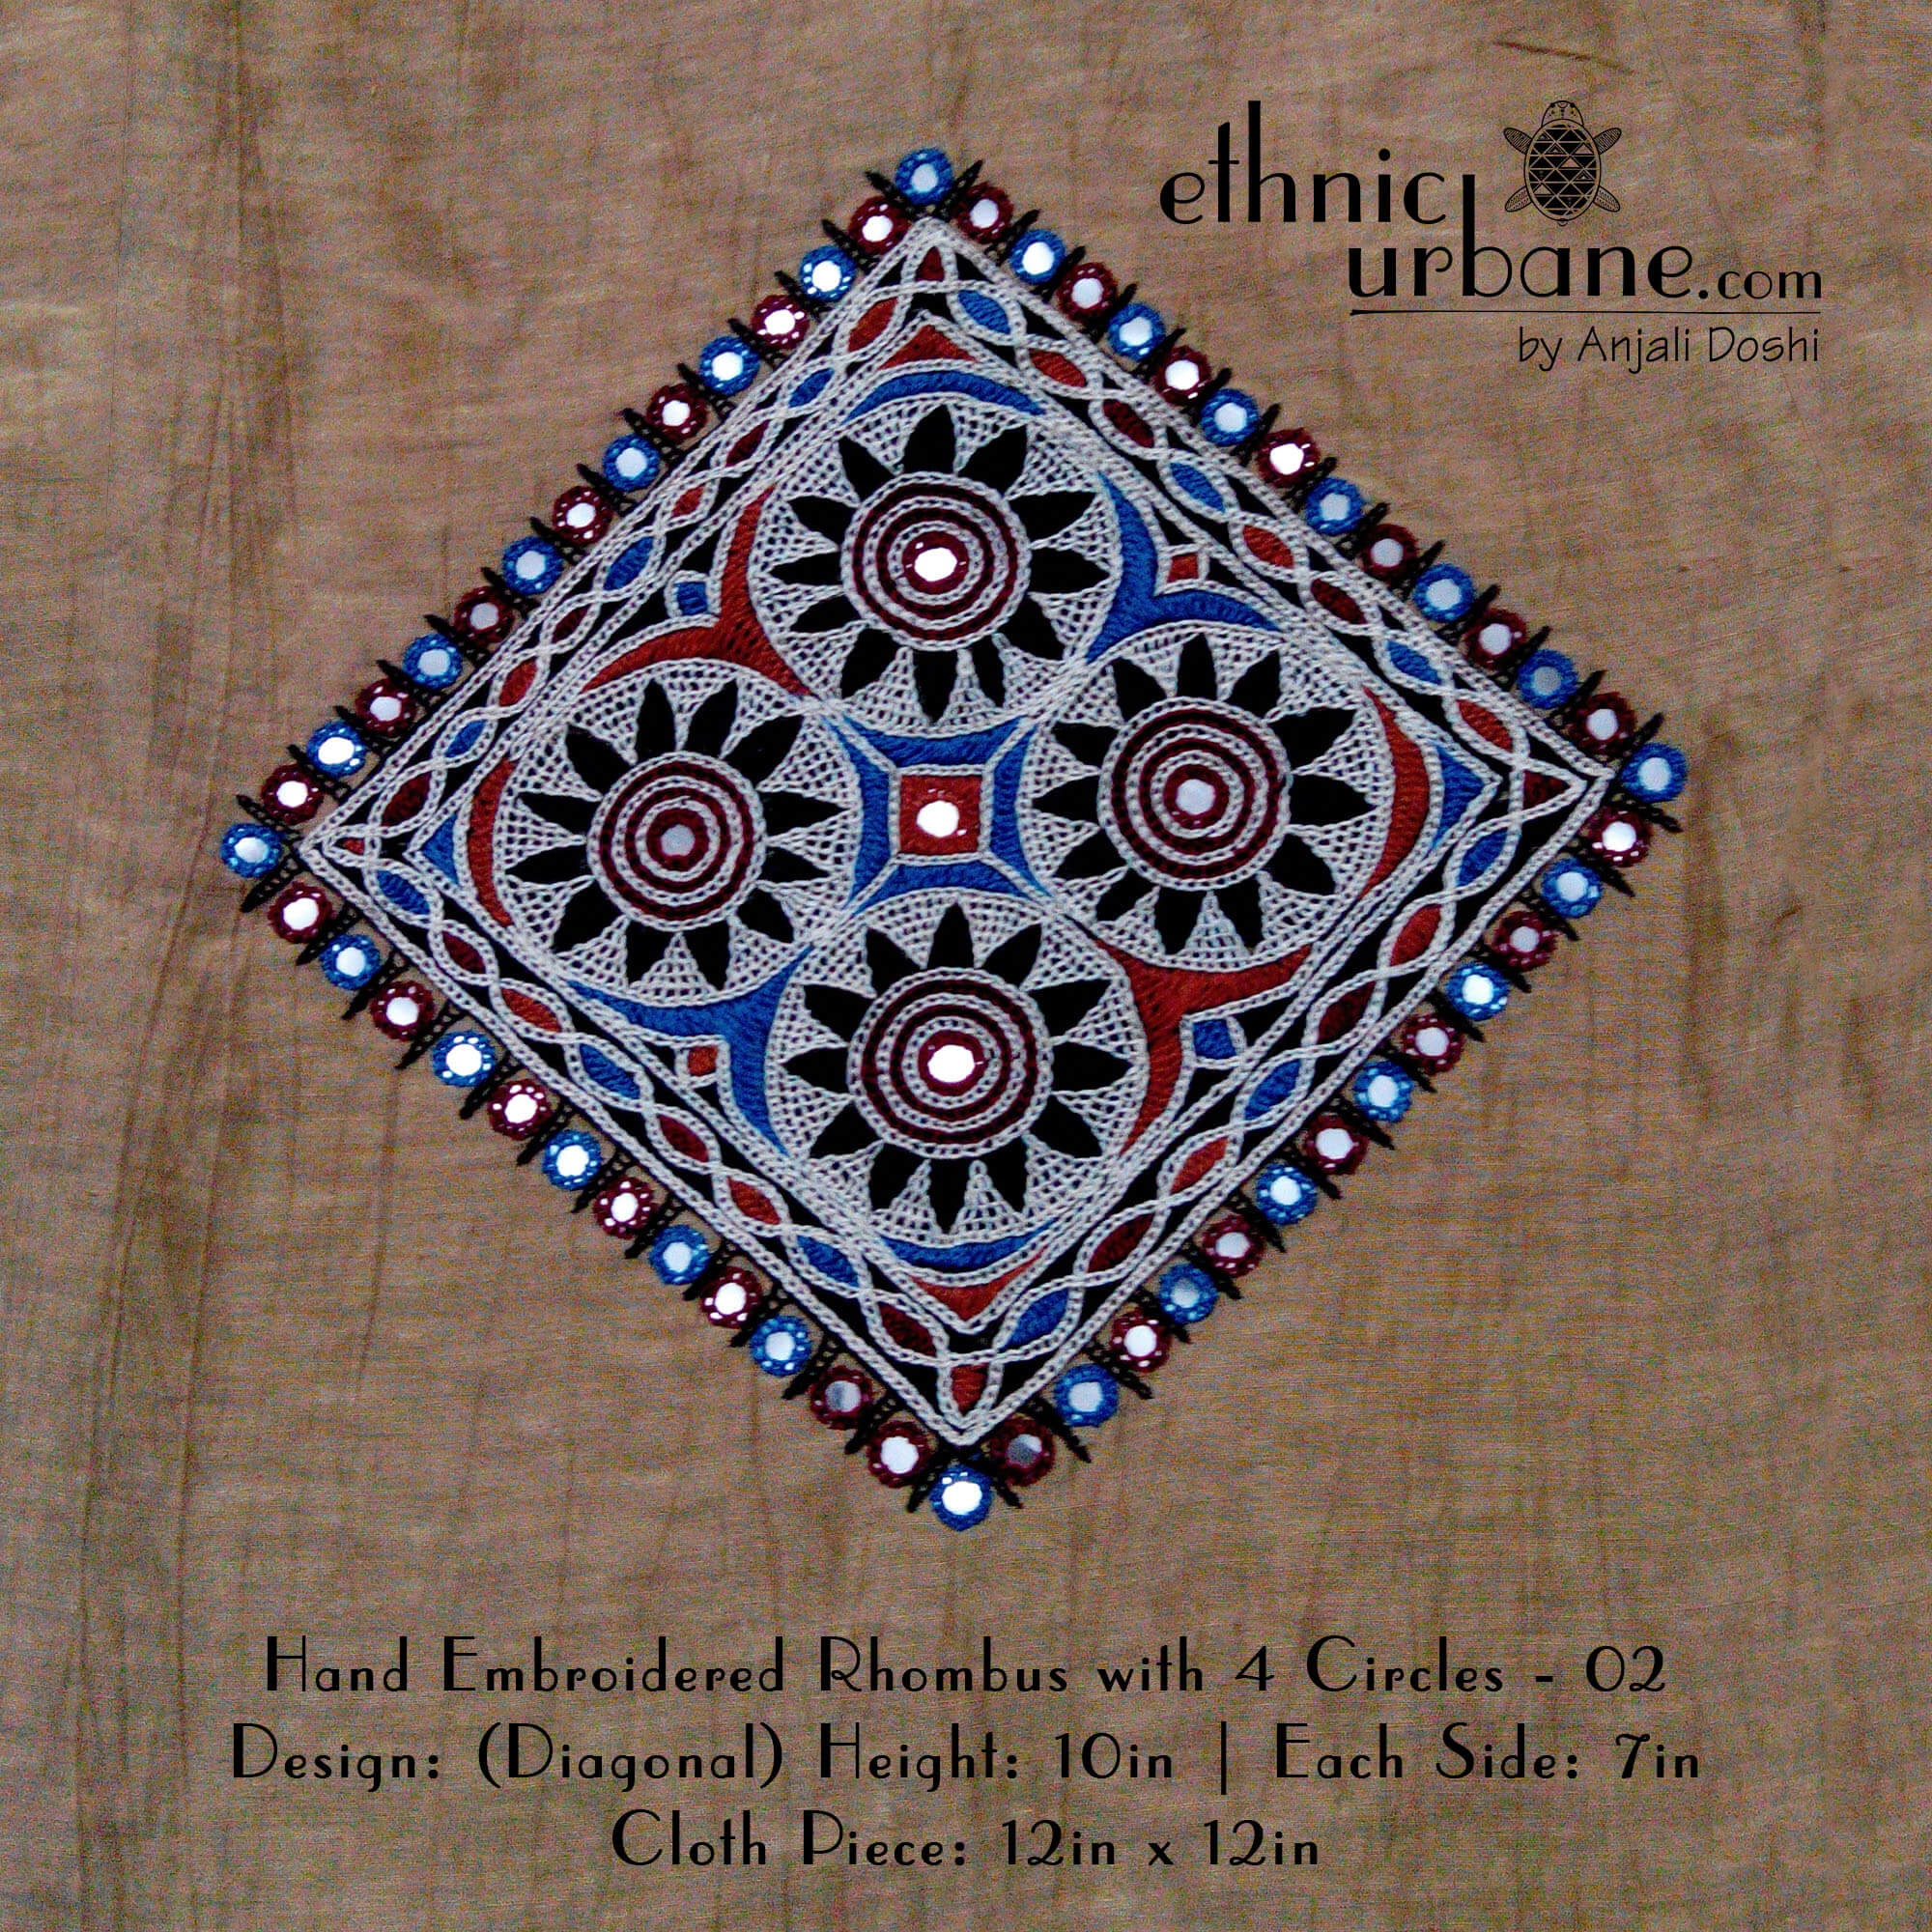 Hand Embroidered Rhombus With 4 Circles  02  Ethnic